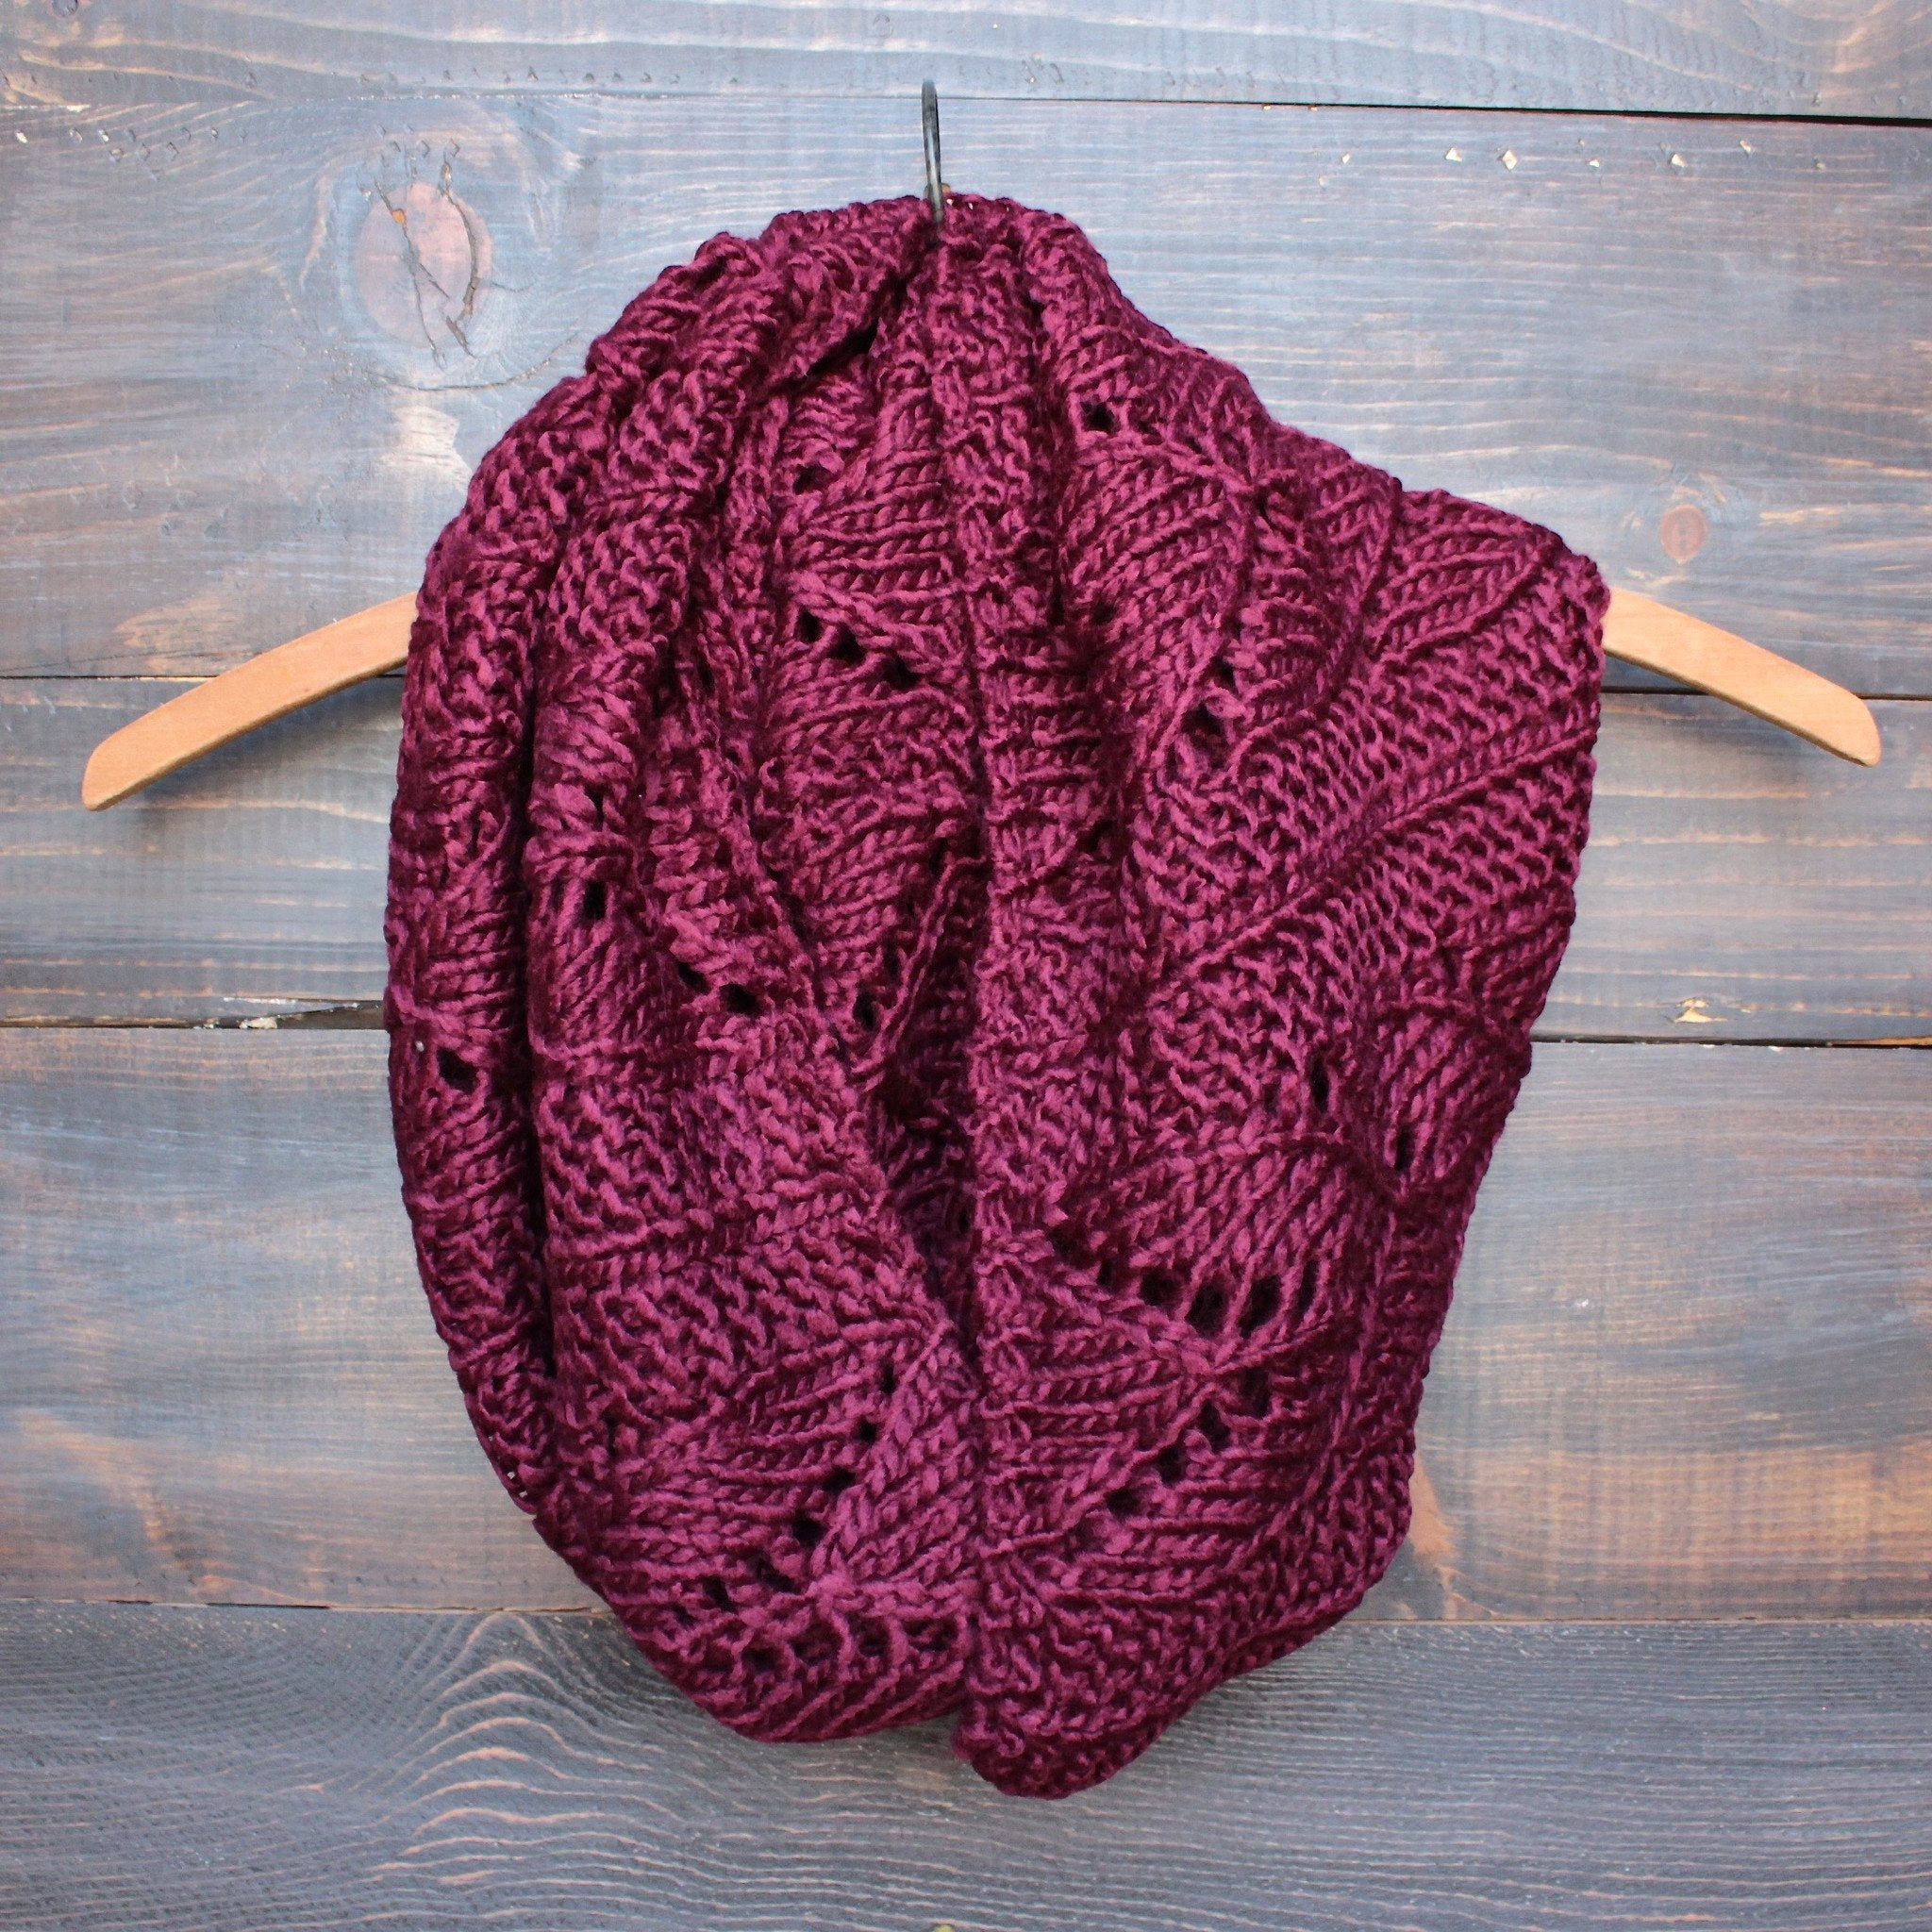 knit leaf pattern infinity scarf (more colors) - shophearts - 1